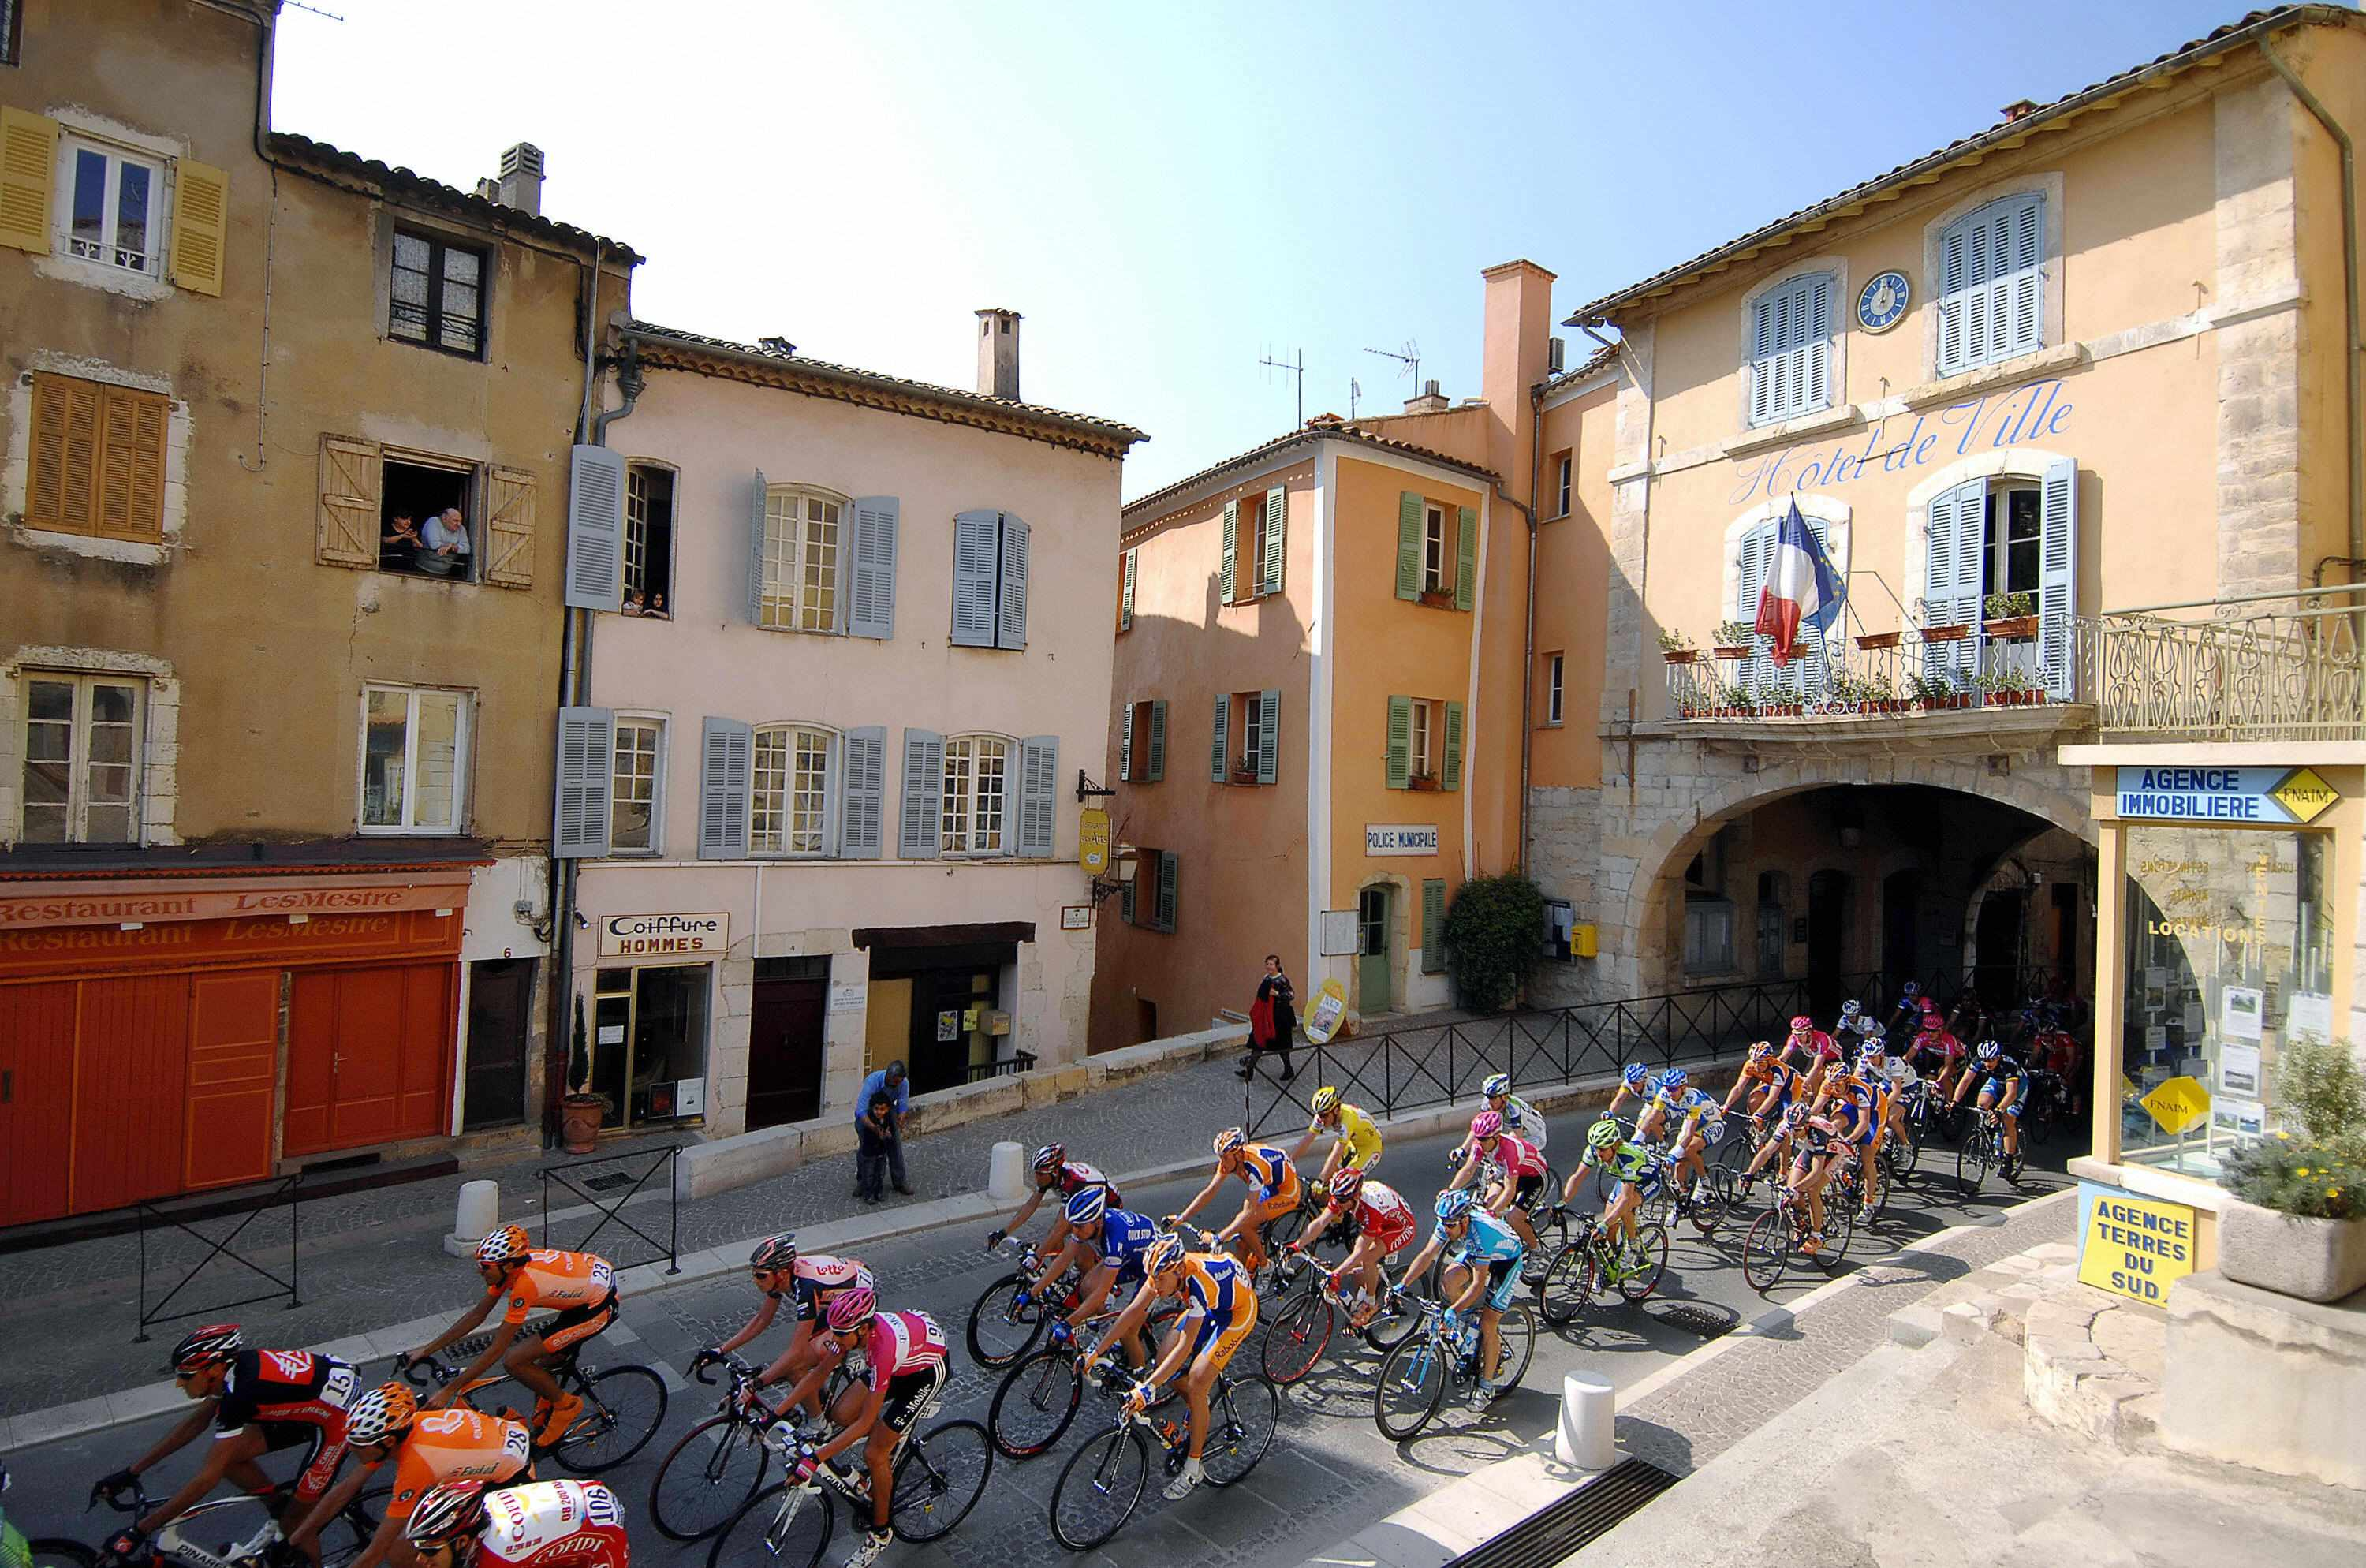 Paris-Nice 2007. The 2008 edition is the focus of a fierce battle between organisers and the UCI